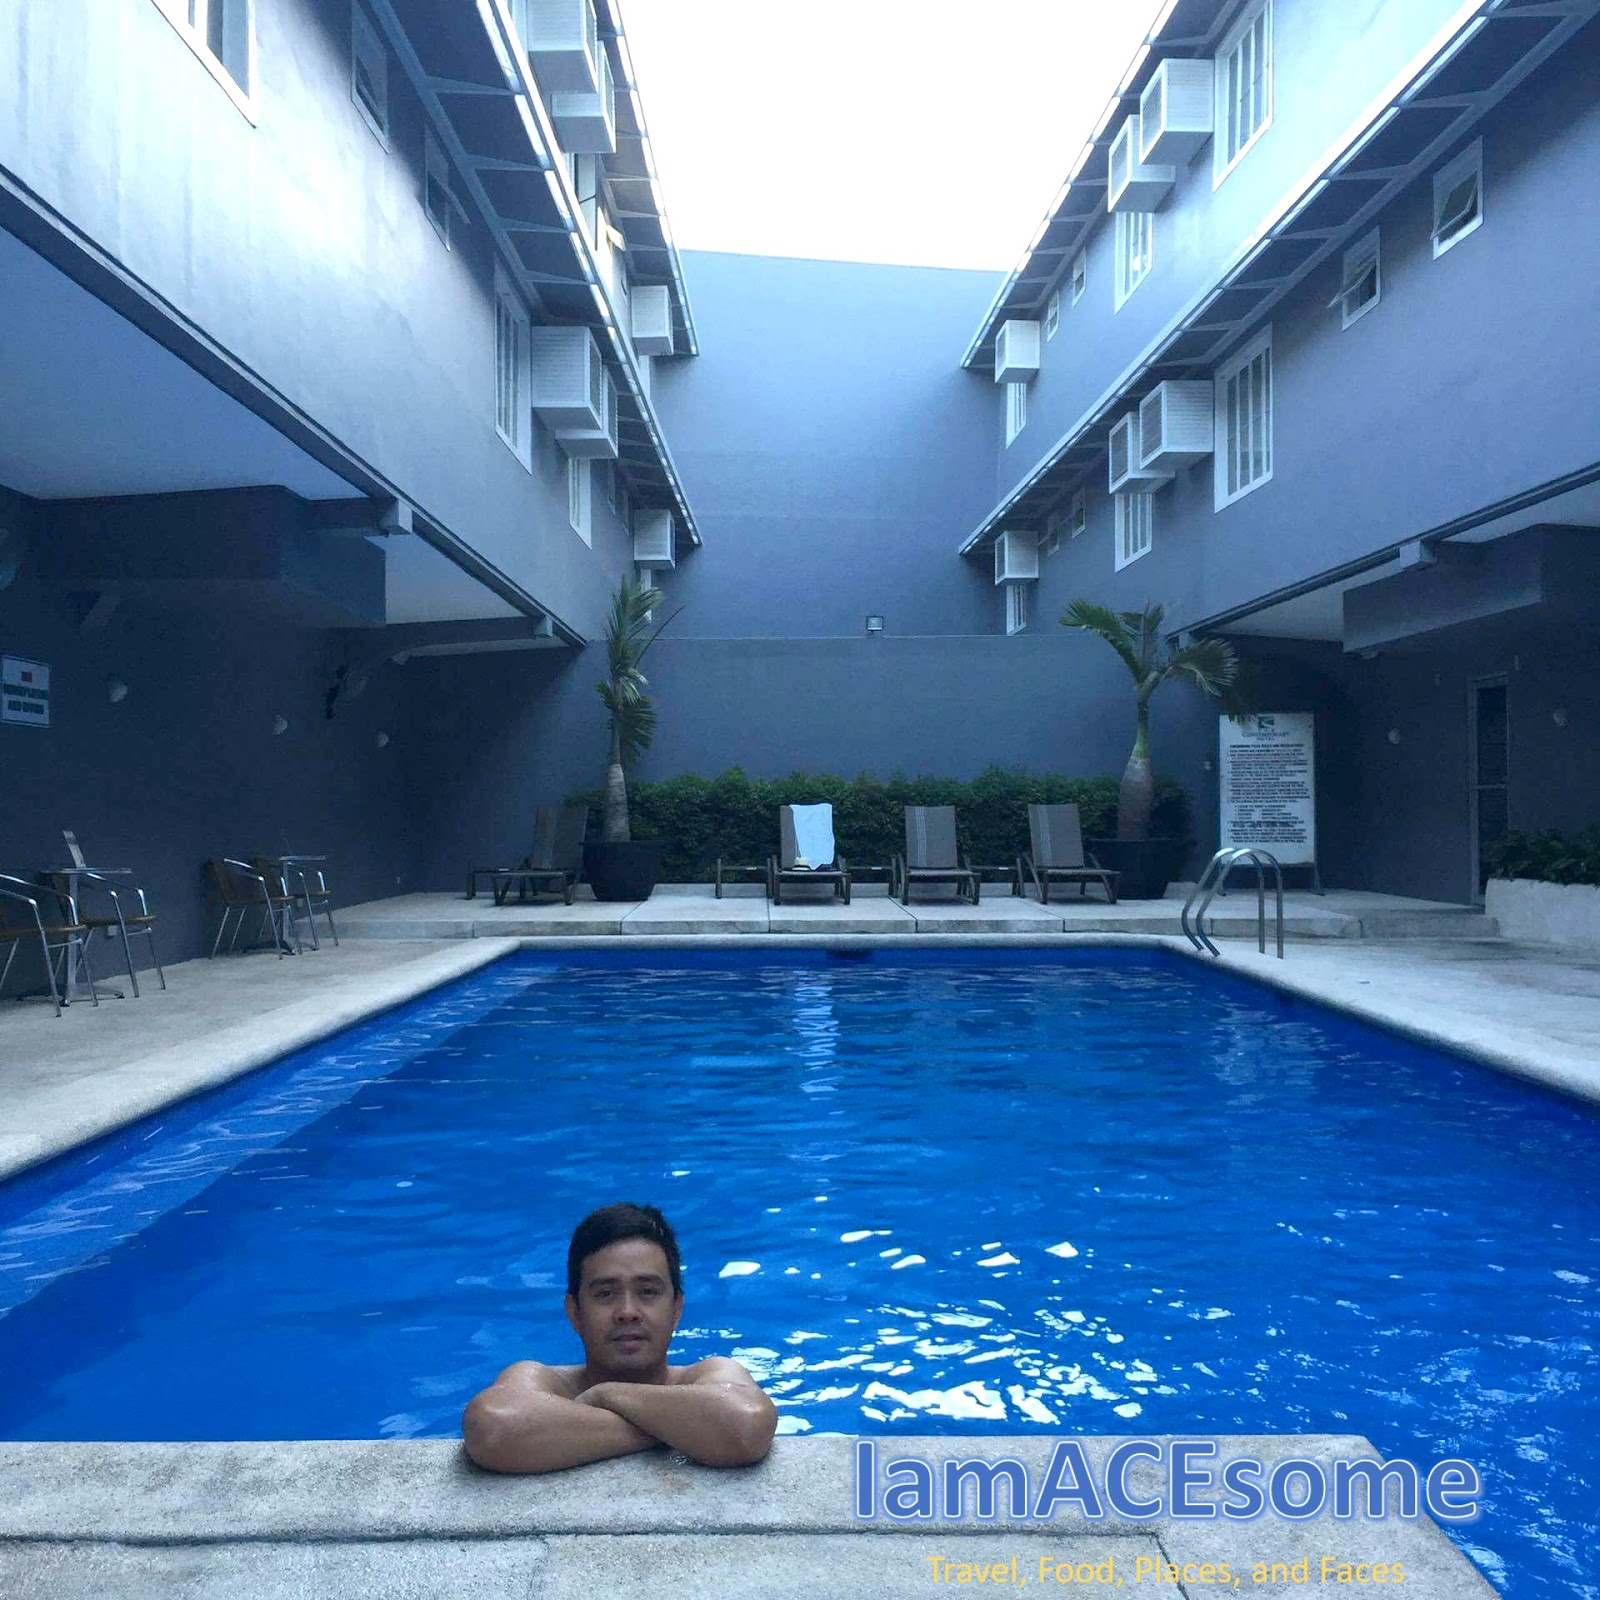 A Refreshing Start This Summer At The Contemporary Hotel In Quezon City Iamacesome